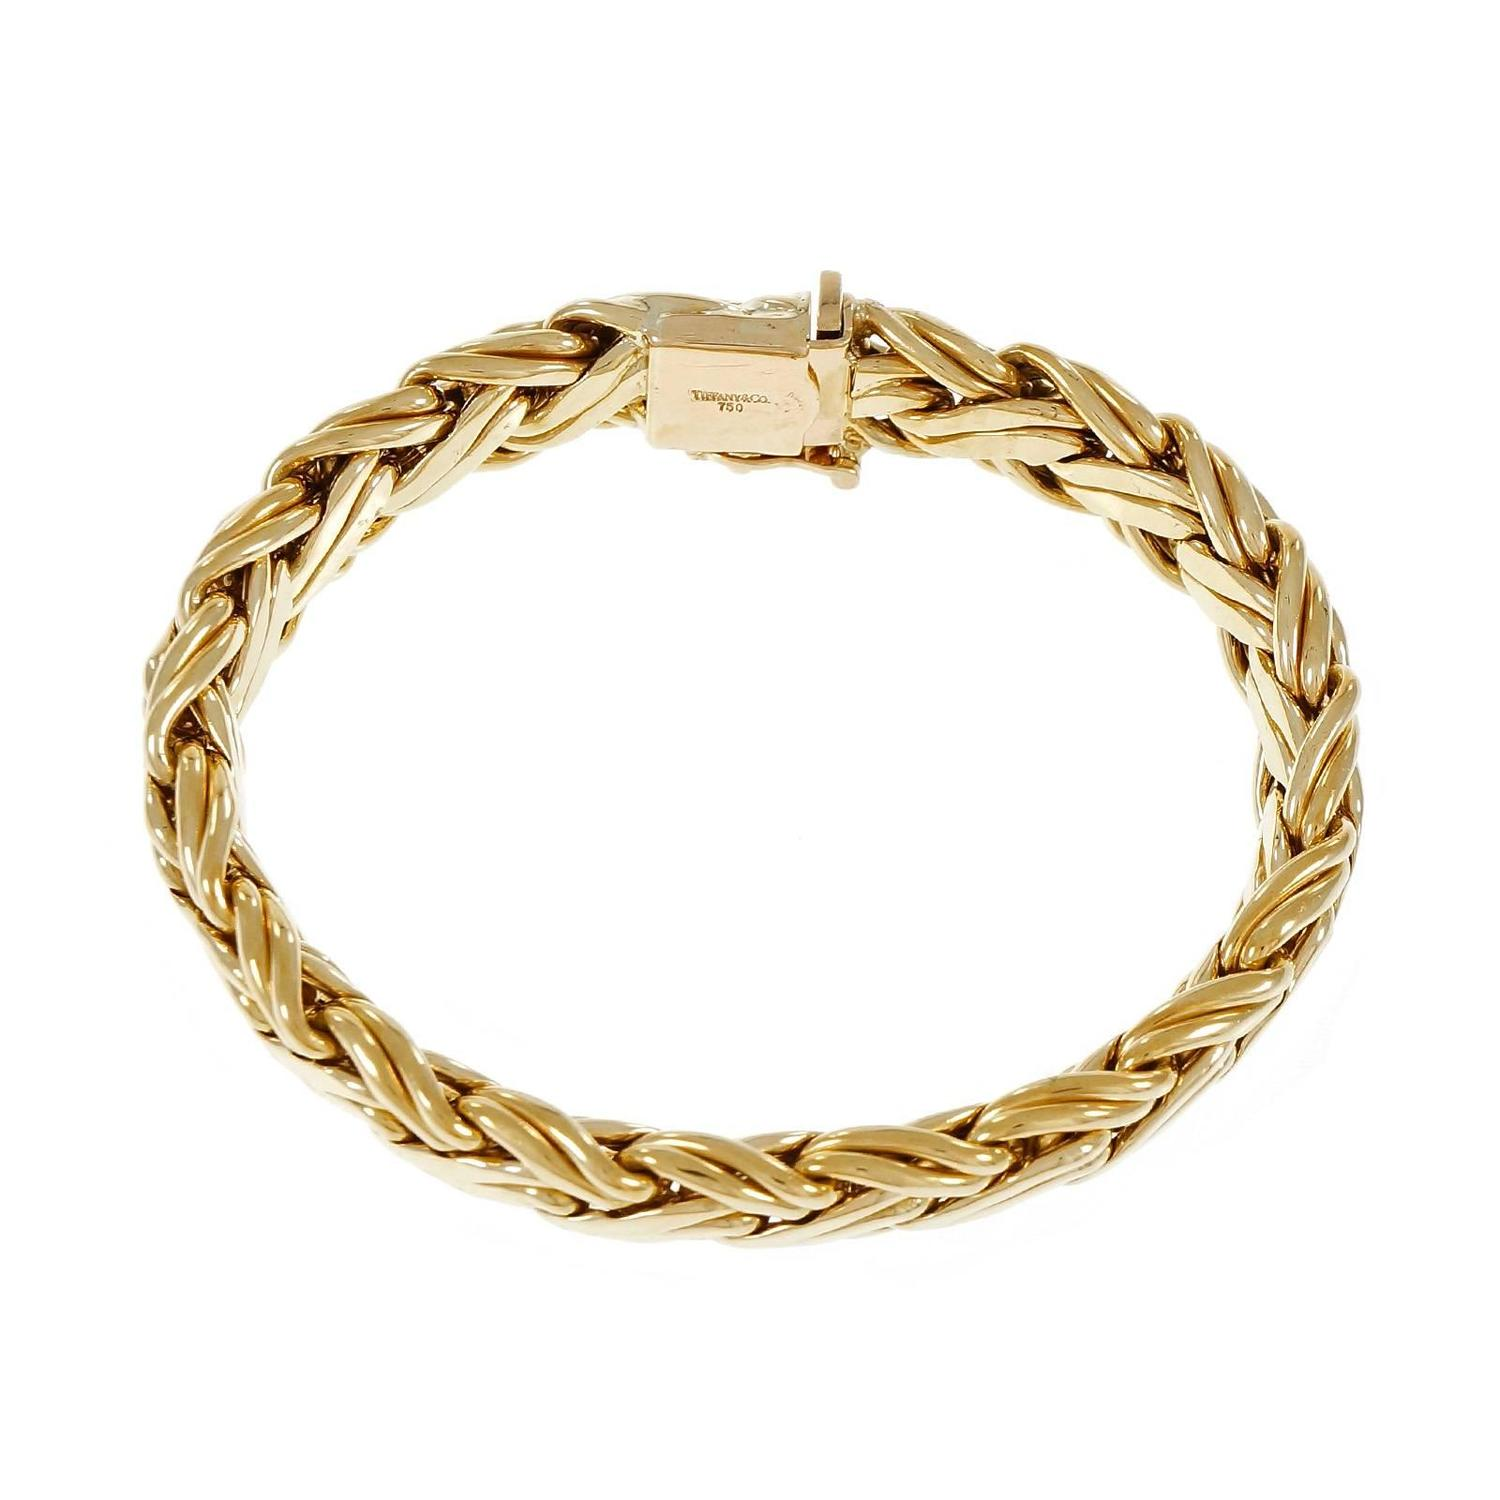 How To Basket Weave Bracelet : Tiffany and co gold basket weave bracelet for sale at stdibs